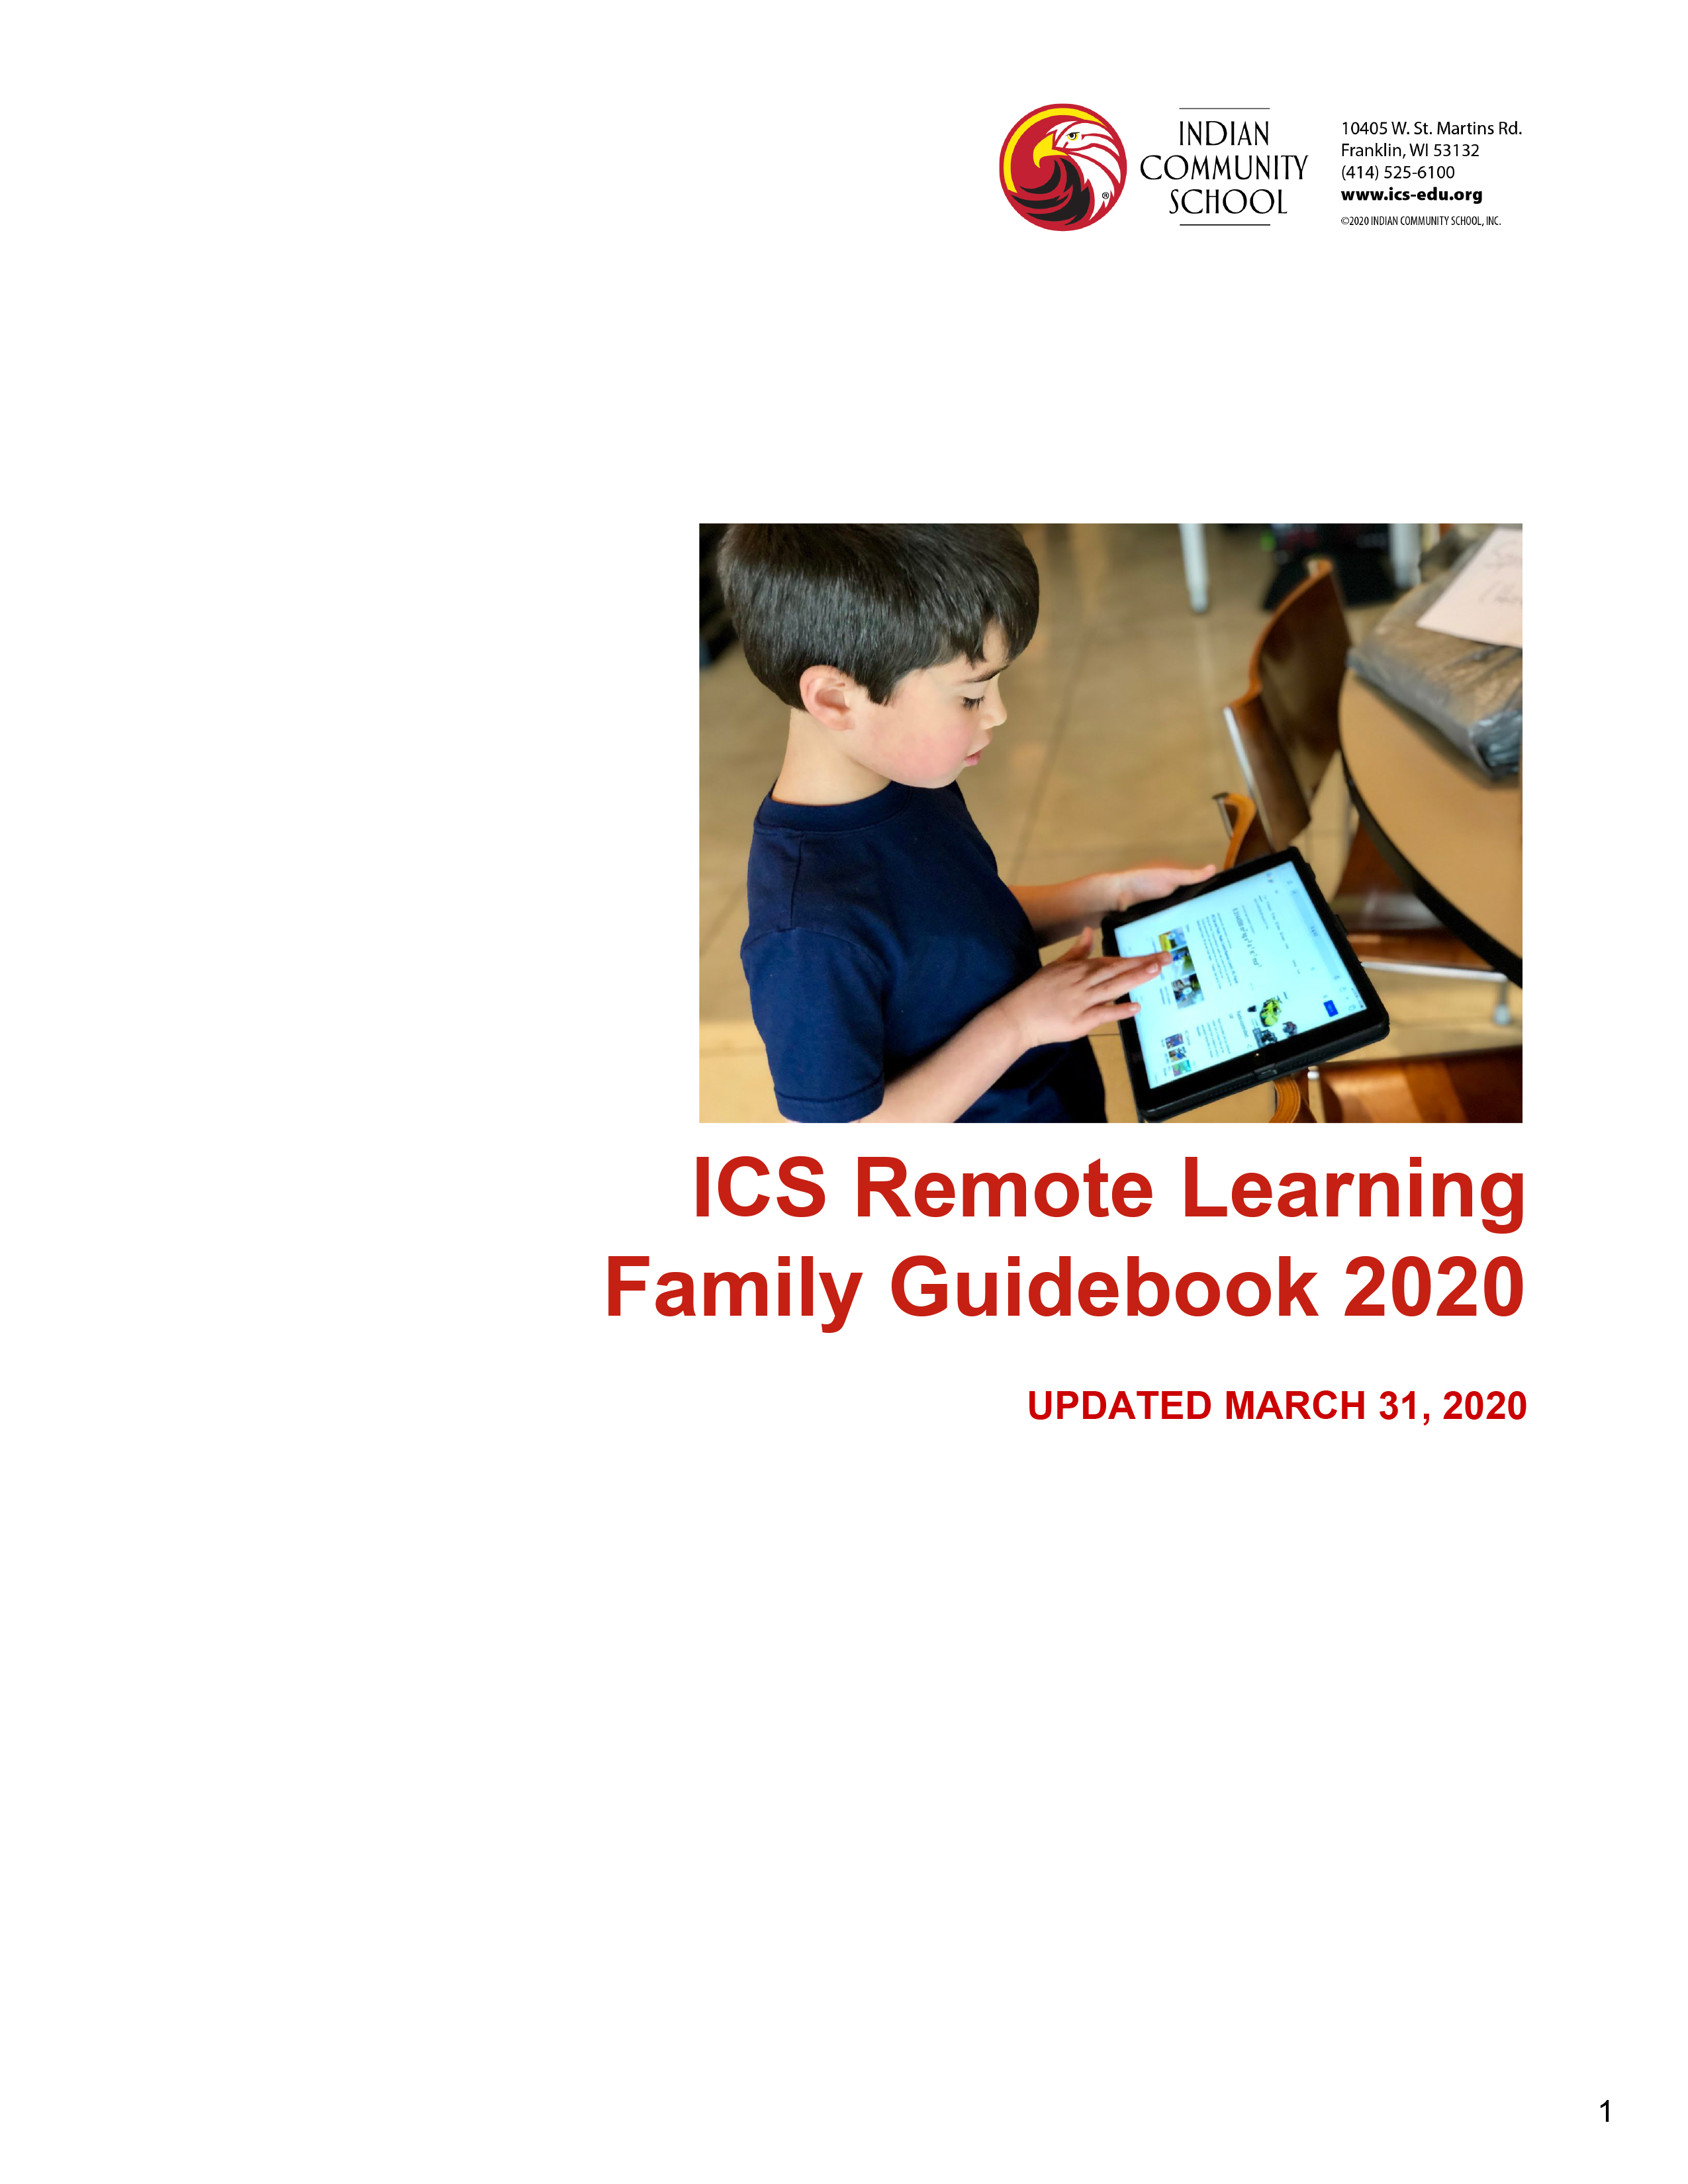 ICS Remote Learning Guidebook 4.2.20